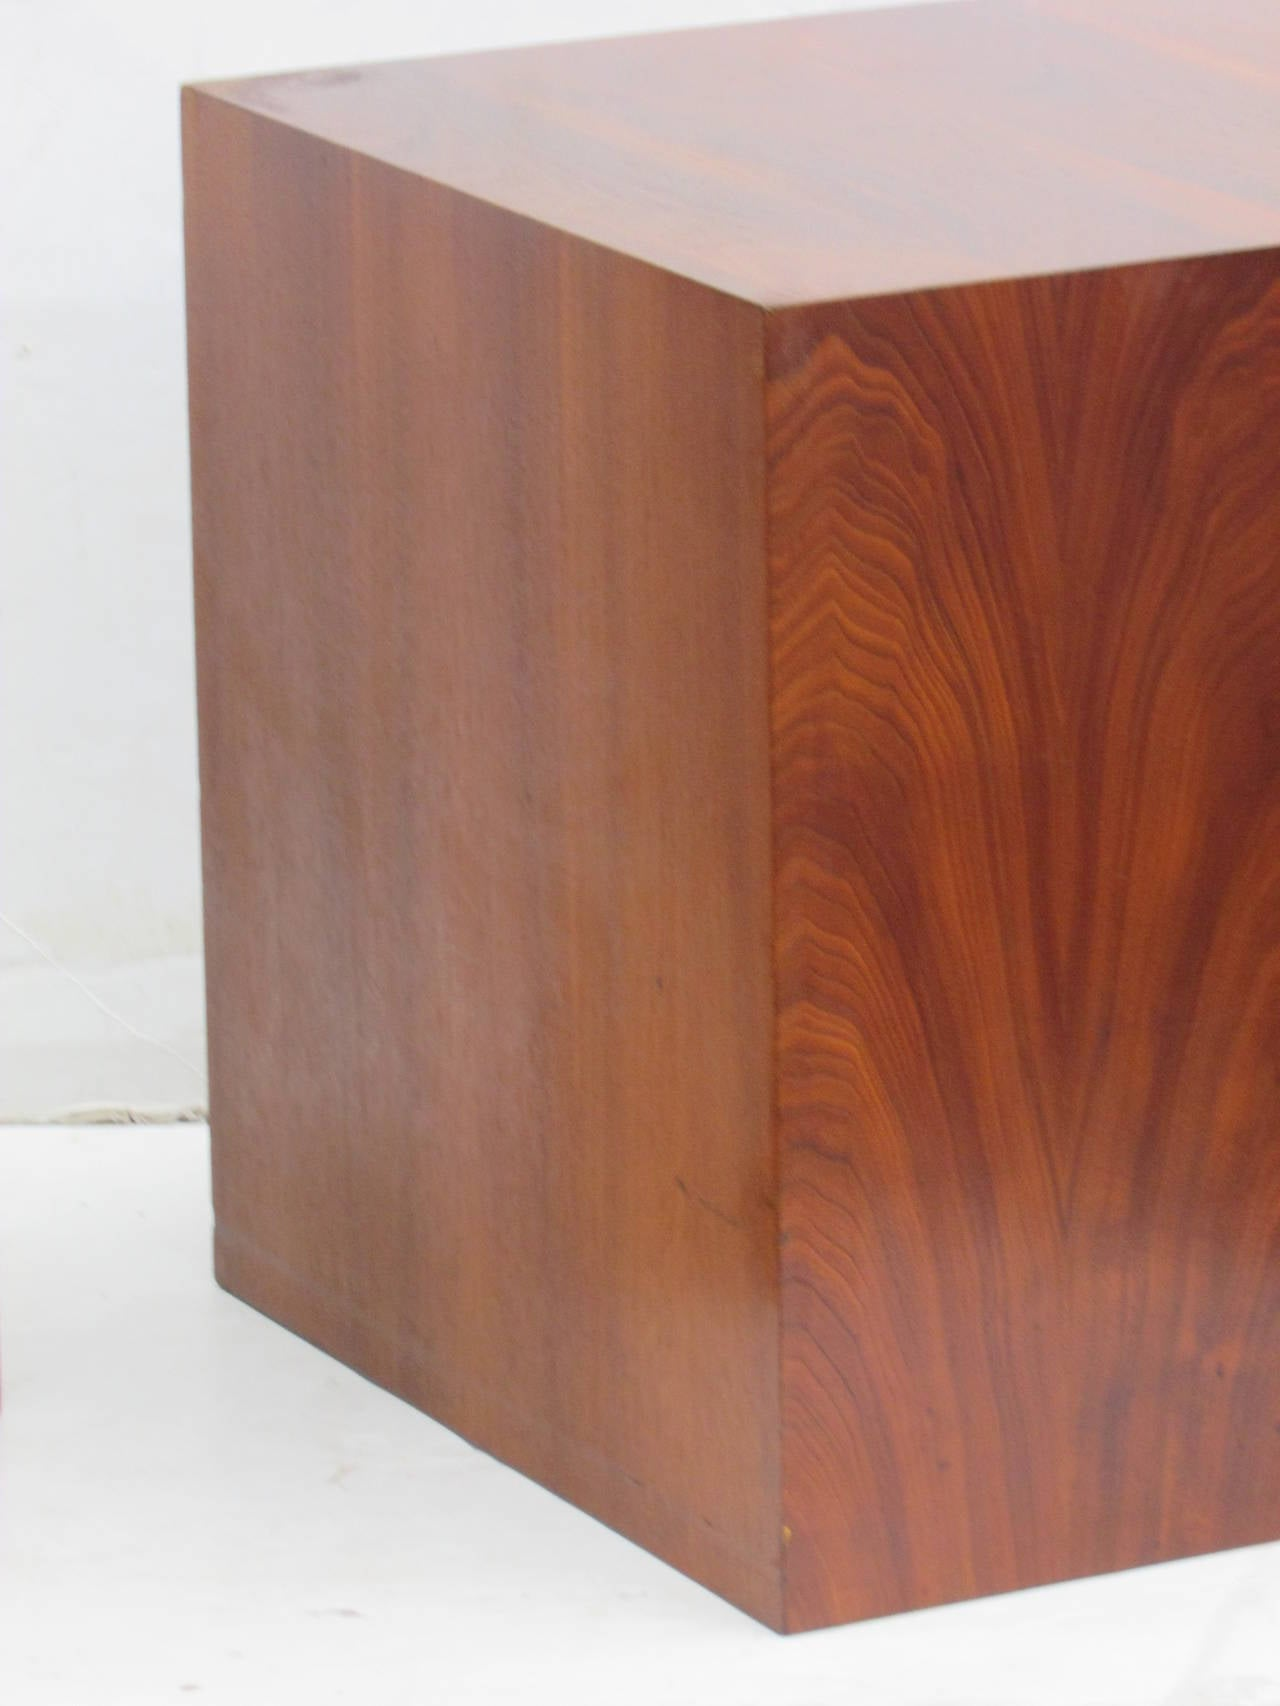 Pair Of Modernist Wood Cube Tables At 1stdibs